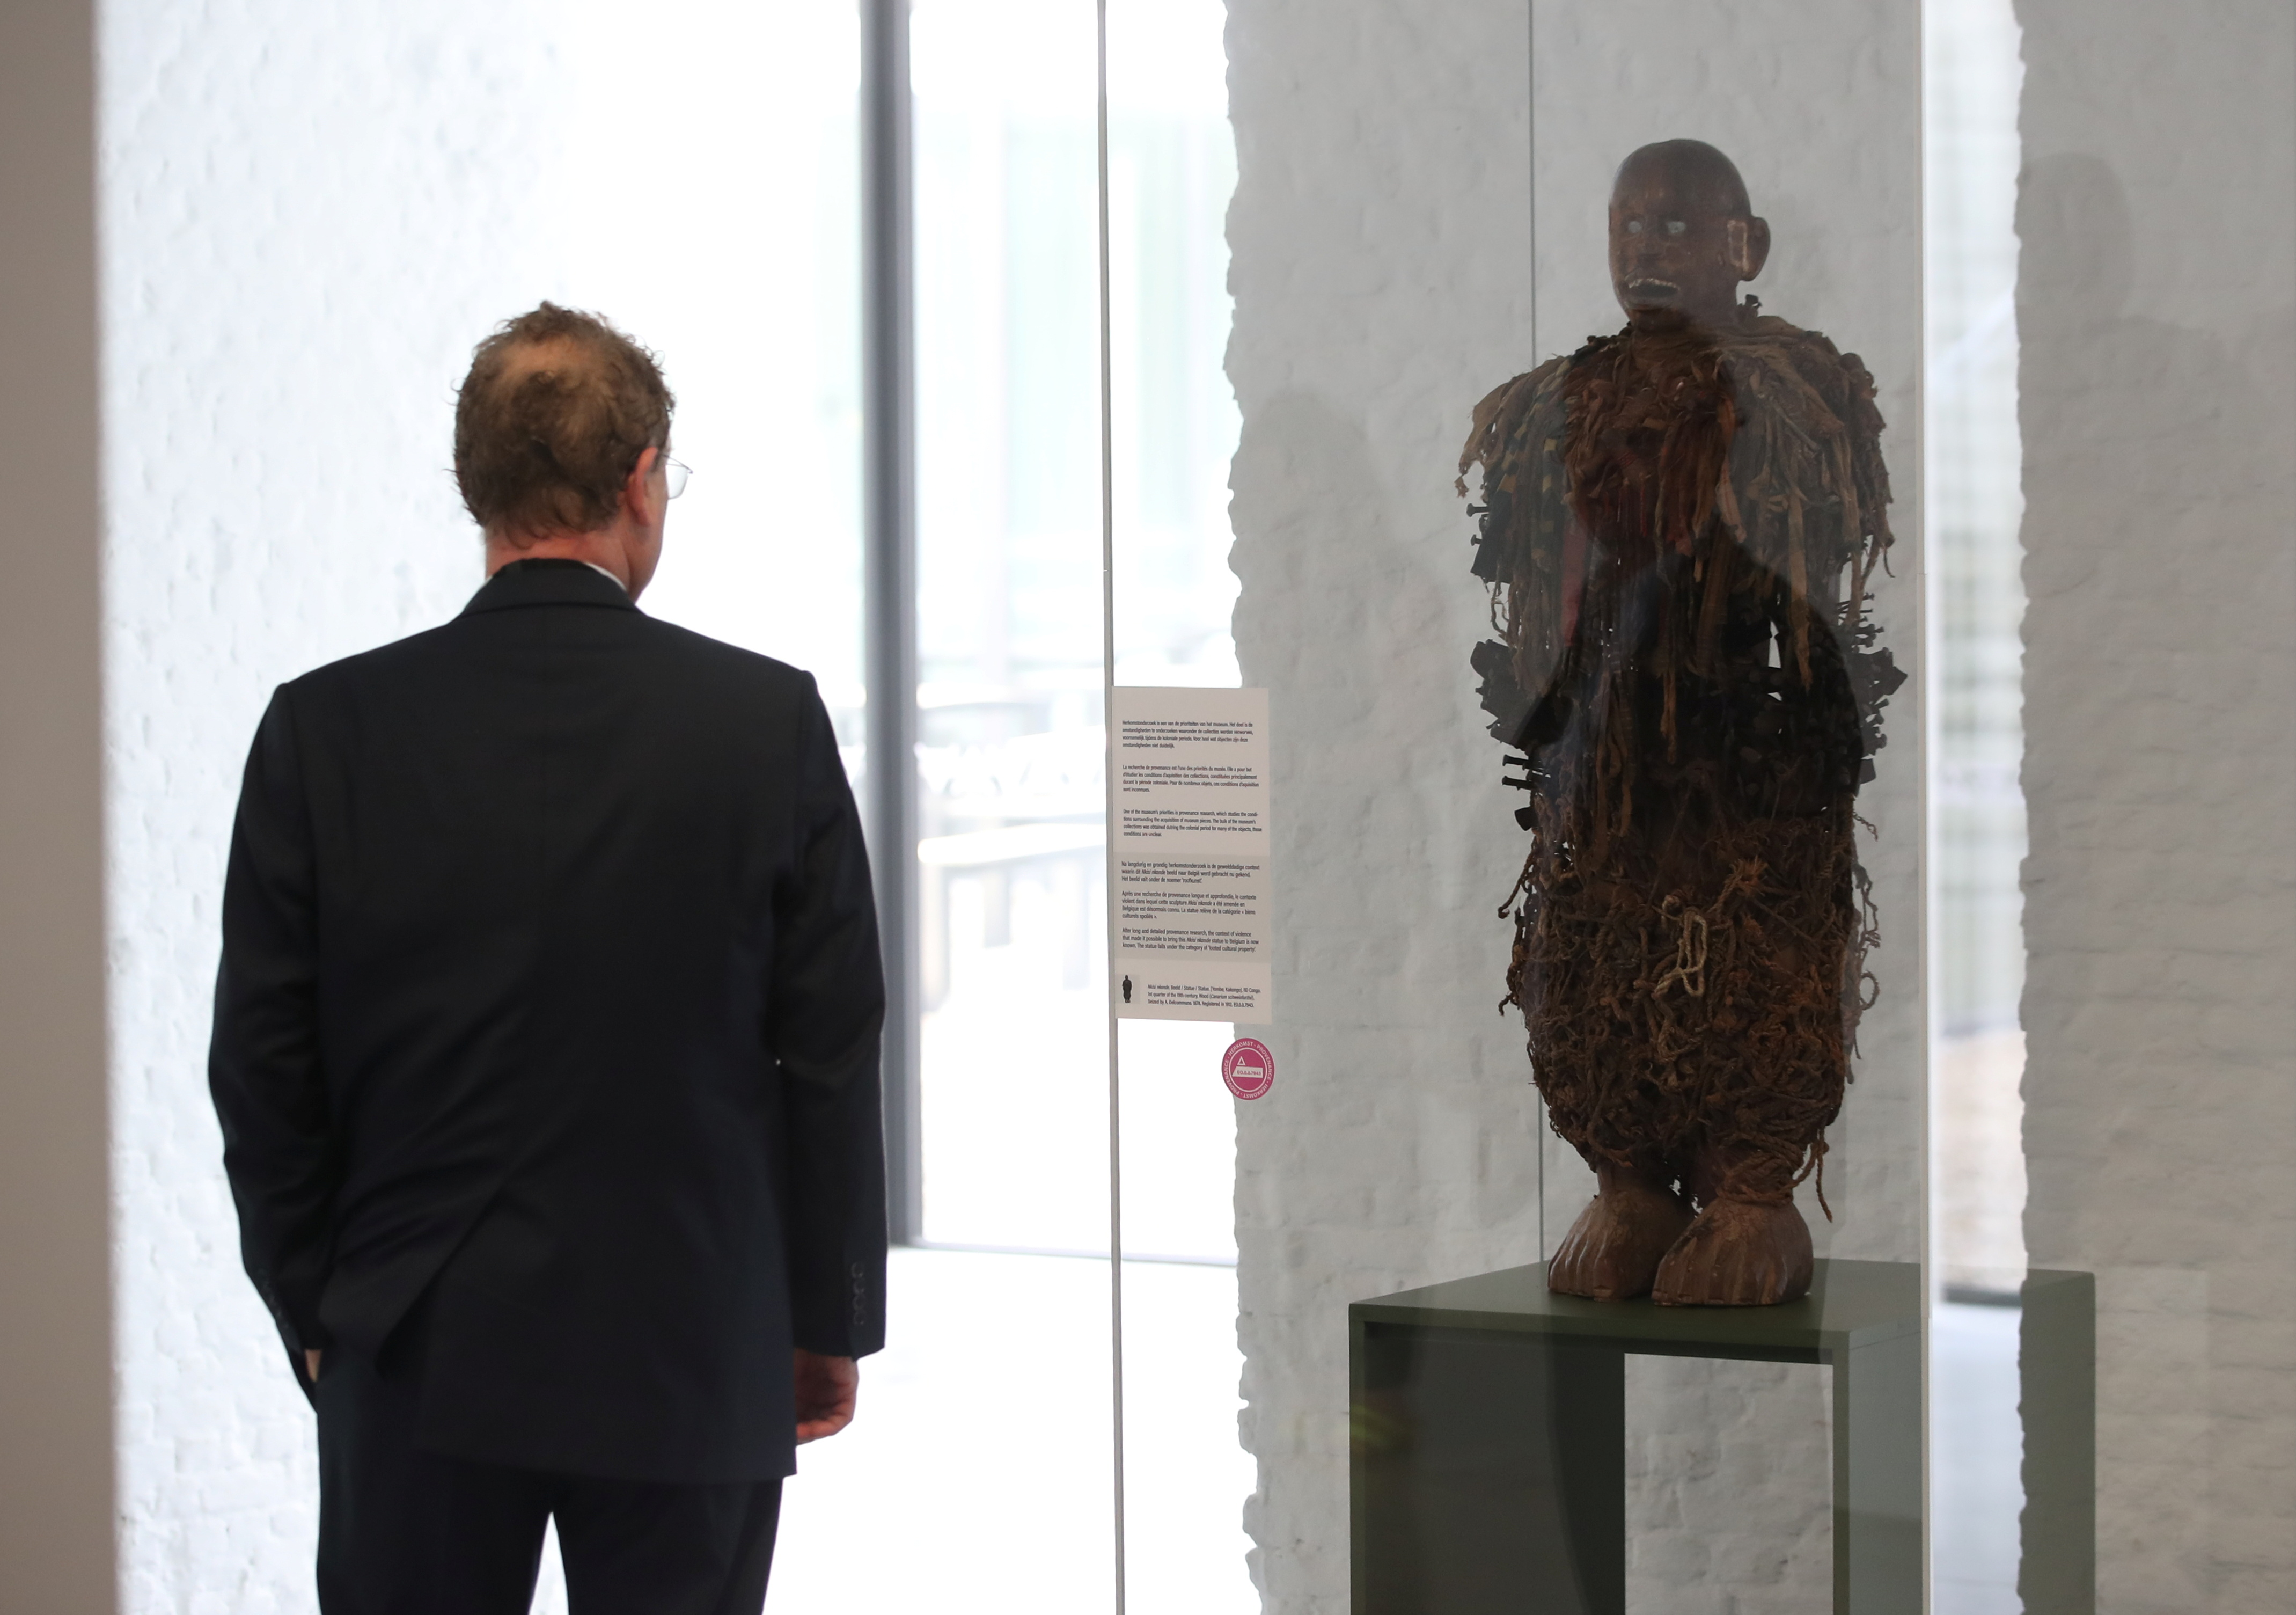 Director General of the Royal Museum for Central Africa (RMCA), Guido Gryseels, looks at a statue, dated to the 19th century, as Belgian government has announced plans to return pieces of art looted from Congo during colonial rule, in Tervuren, Belgium July 6, 2021.  REUTERS/Yves Herman